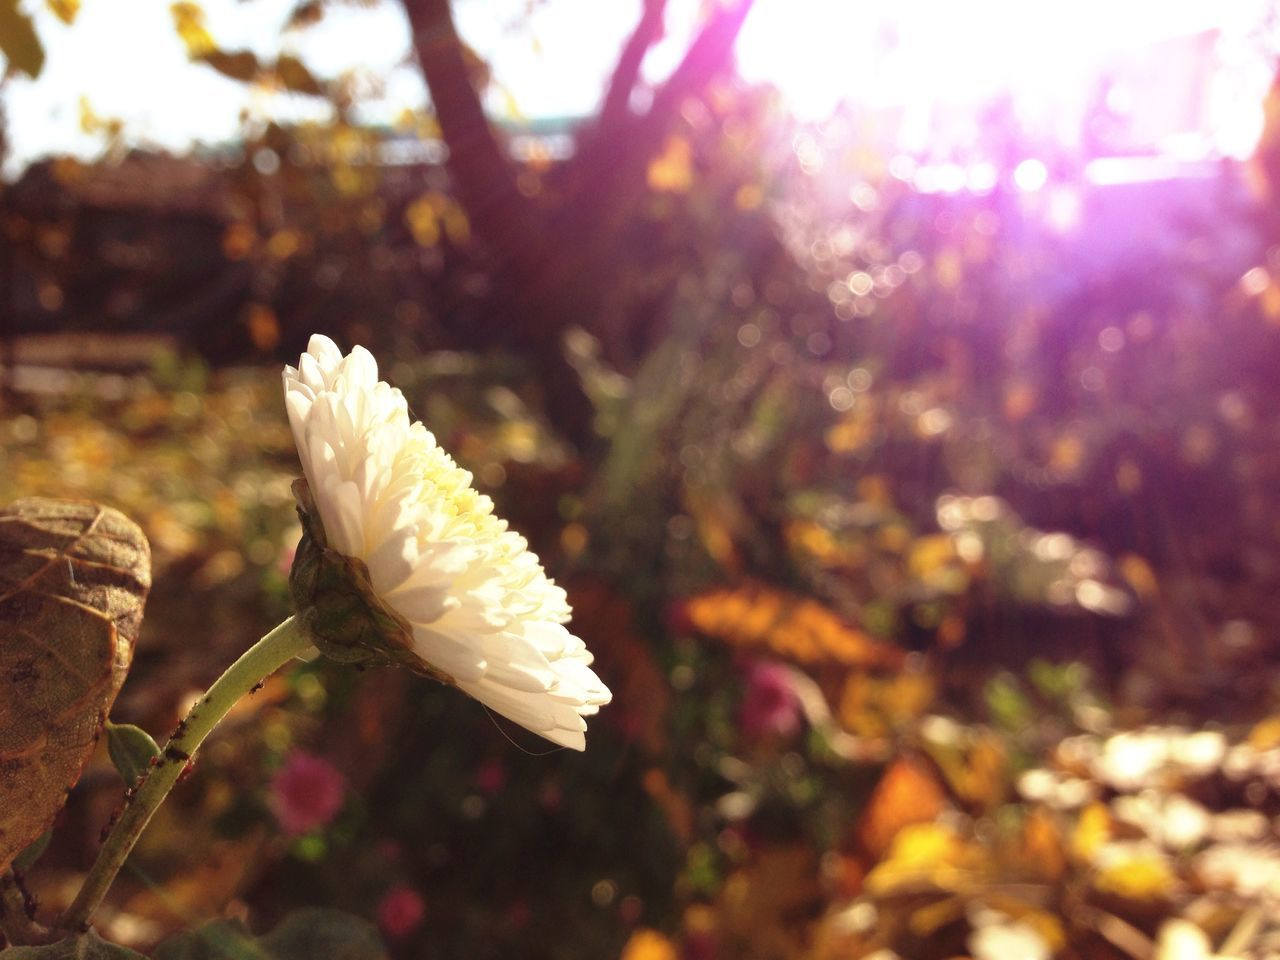 flower, nature, beauty in nature, white color, petal, fragility, growth, freshness, focus on foreground, no people, outdoors, day, plant, close-up, flower head, blooming, tree